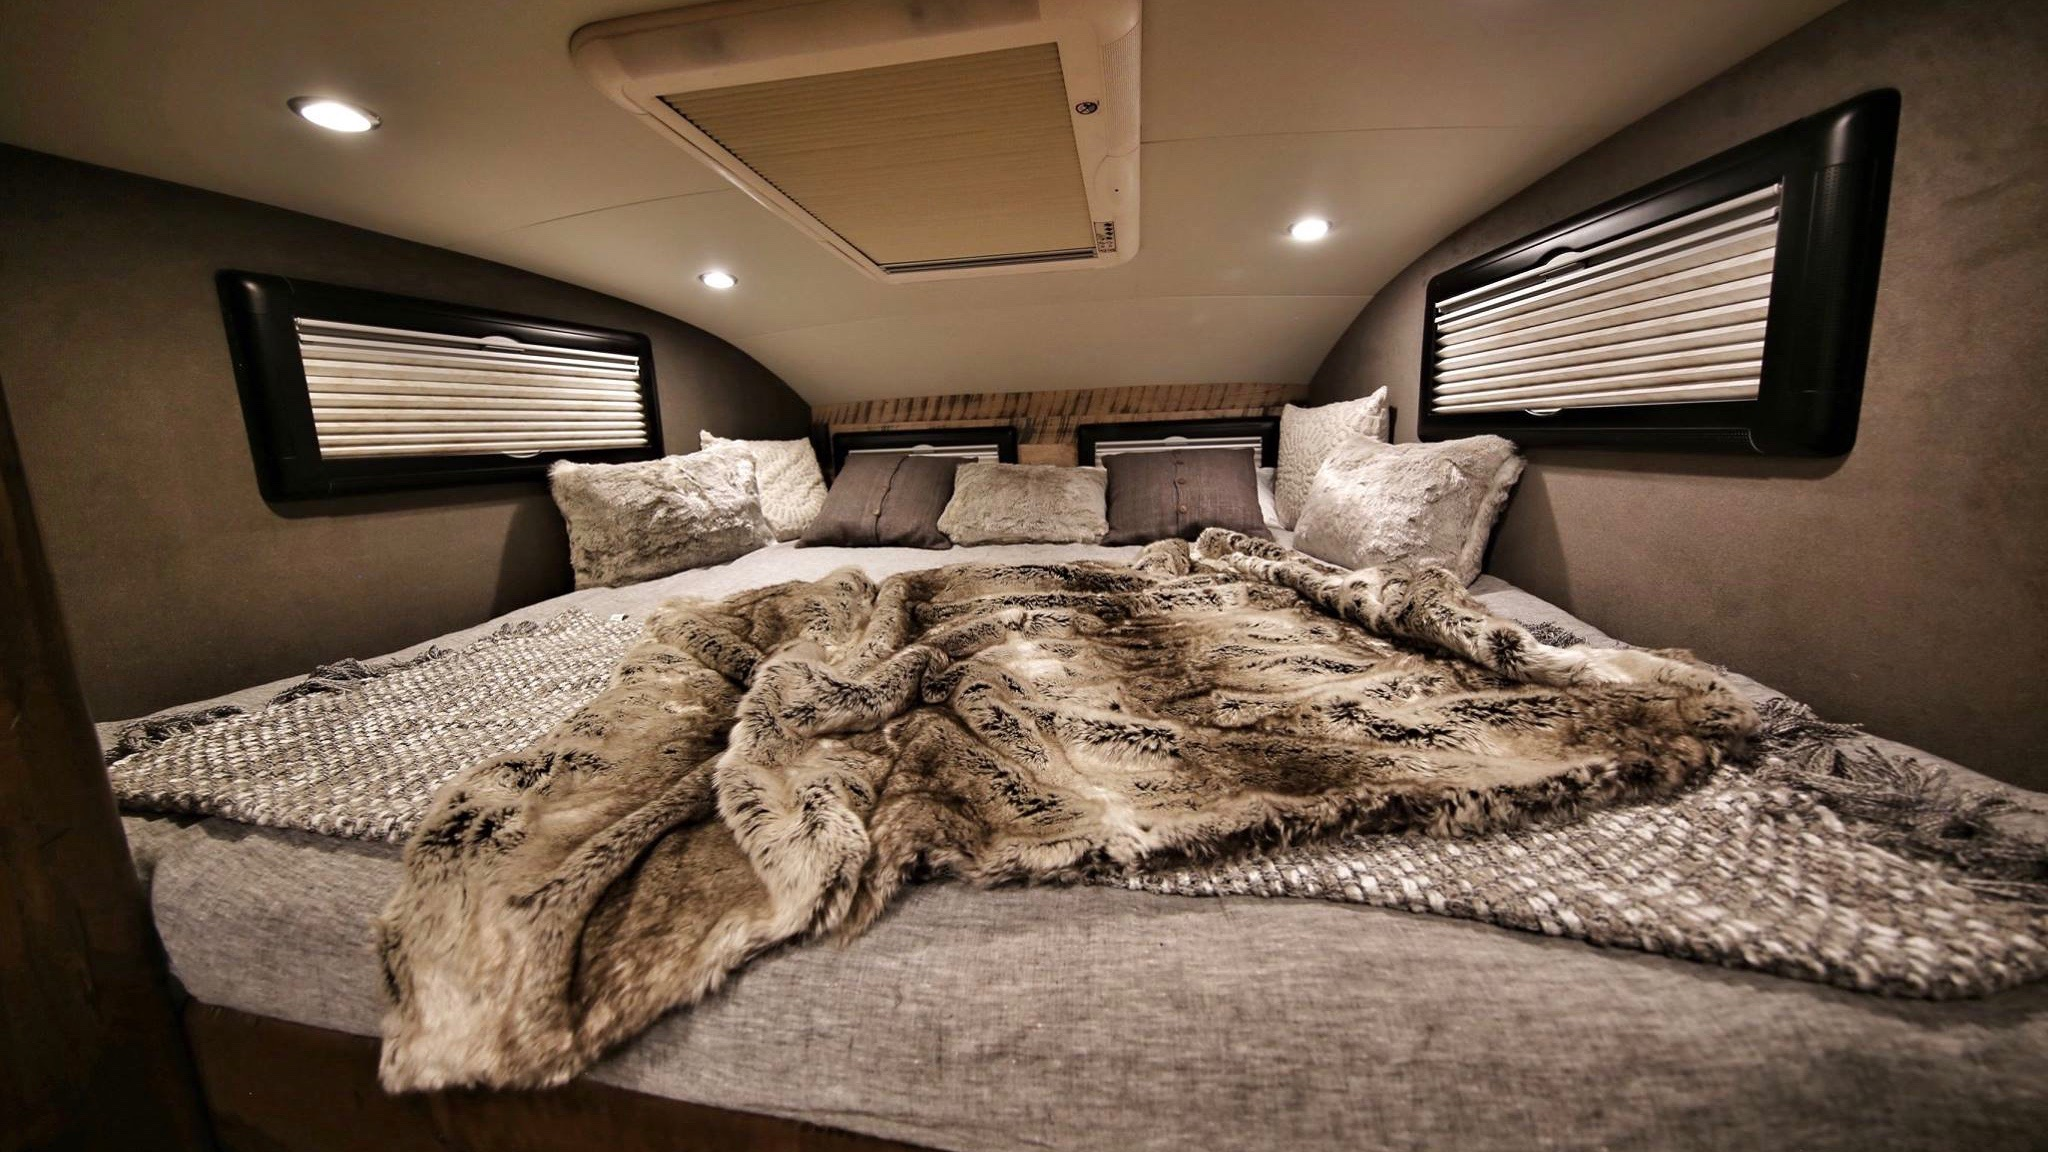 Earthroamer XV HD Could be the Most Luxurious Offroad